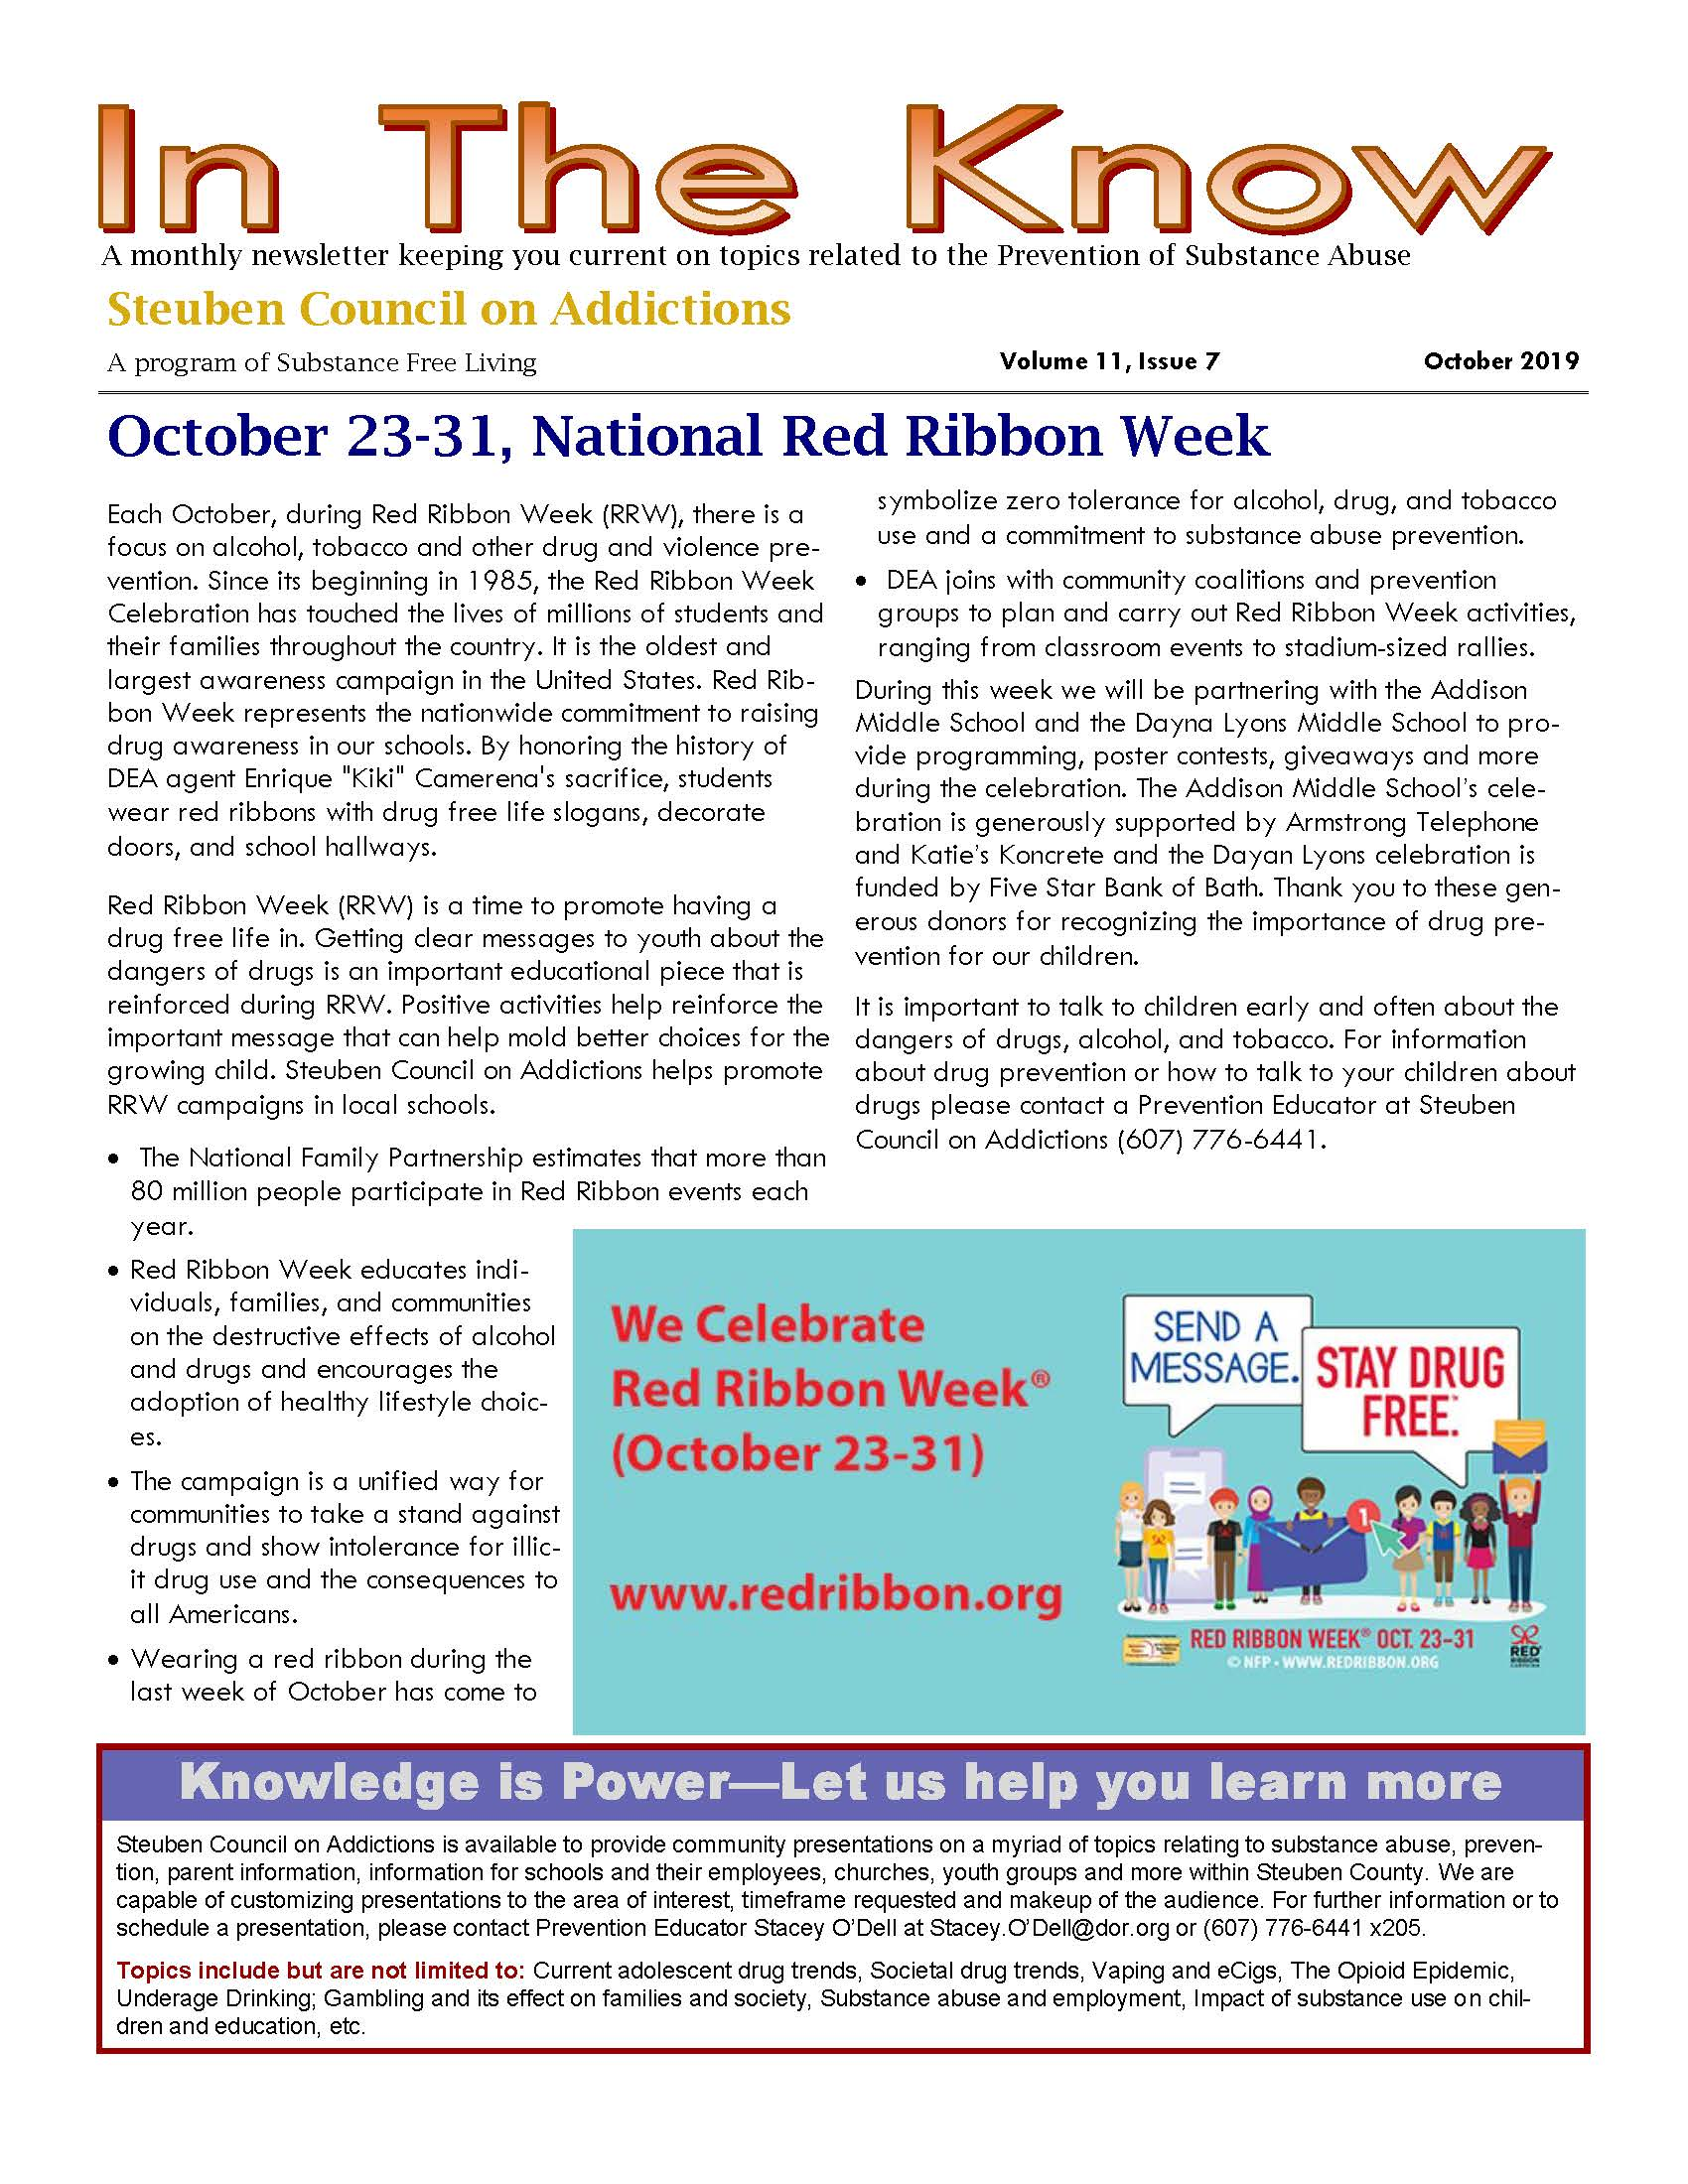 October 2019 Page 1 - In the Know - Steuben Council on Addiction News